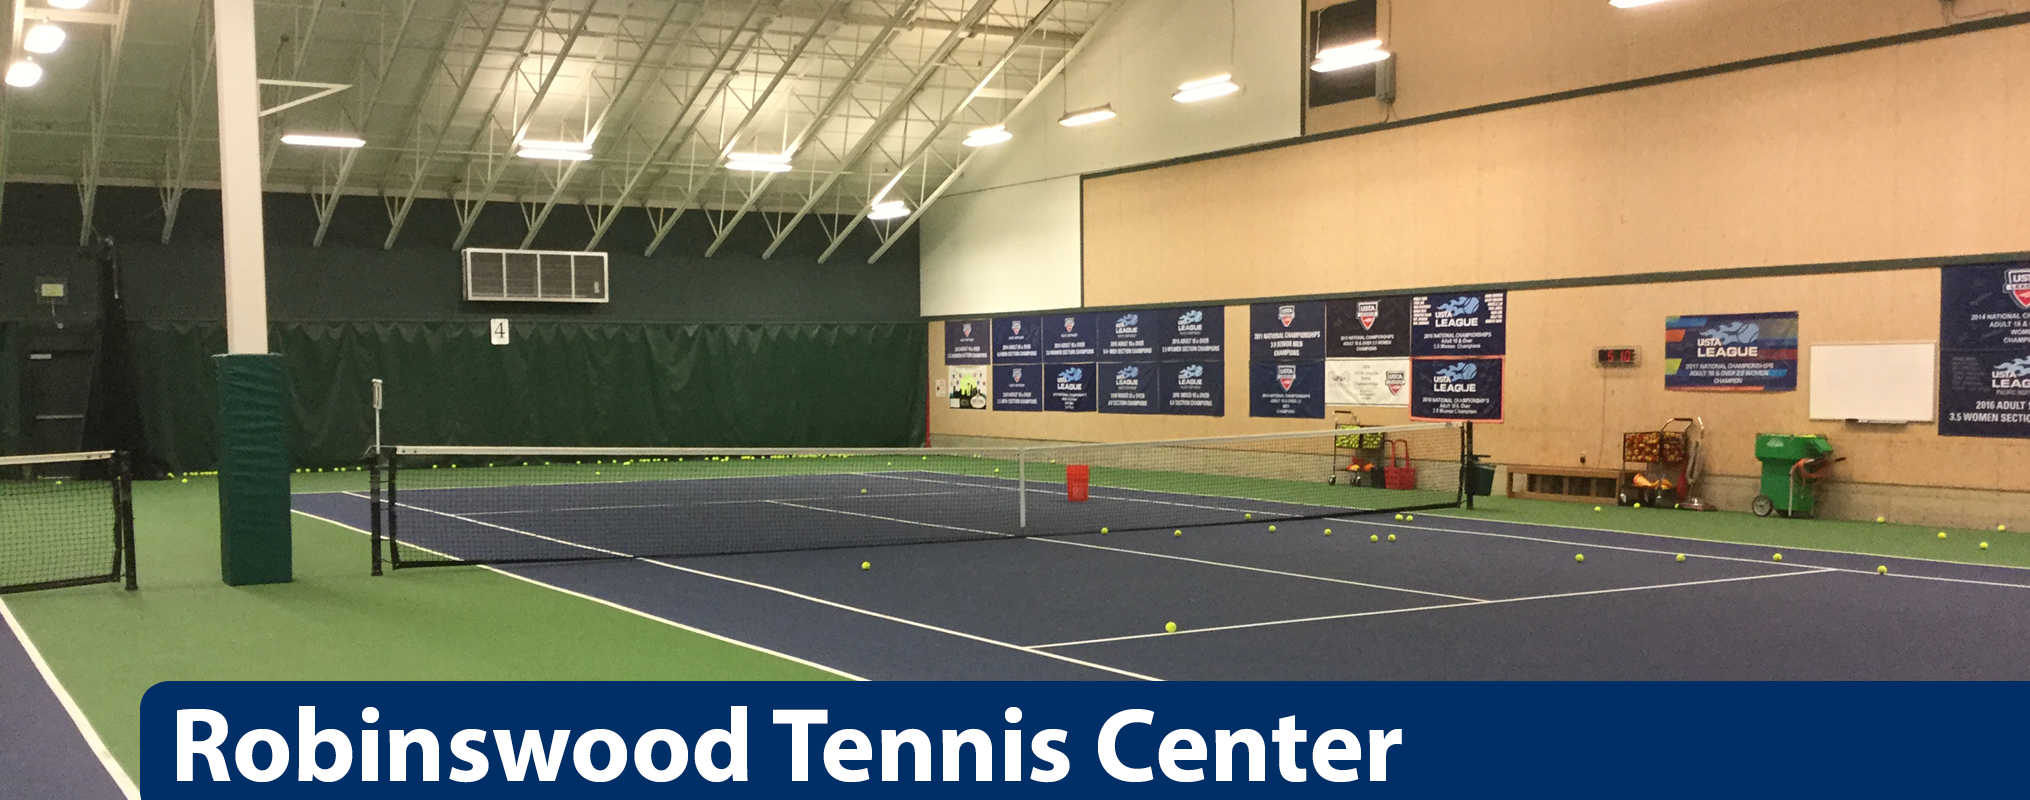 Robinswood Tennis center banner image